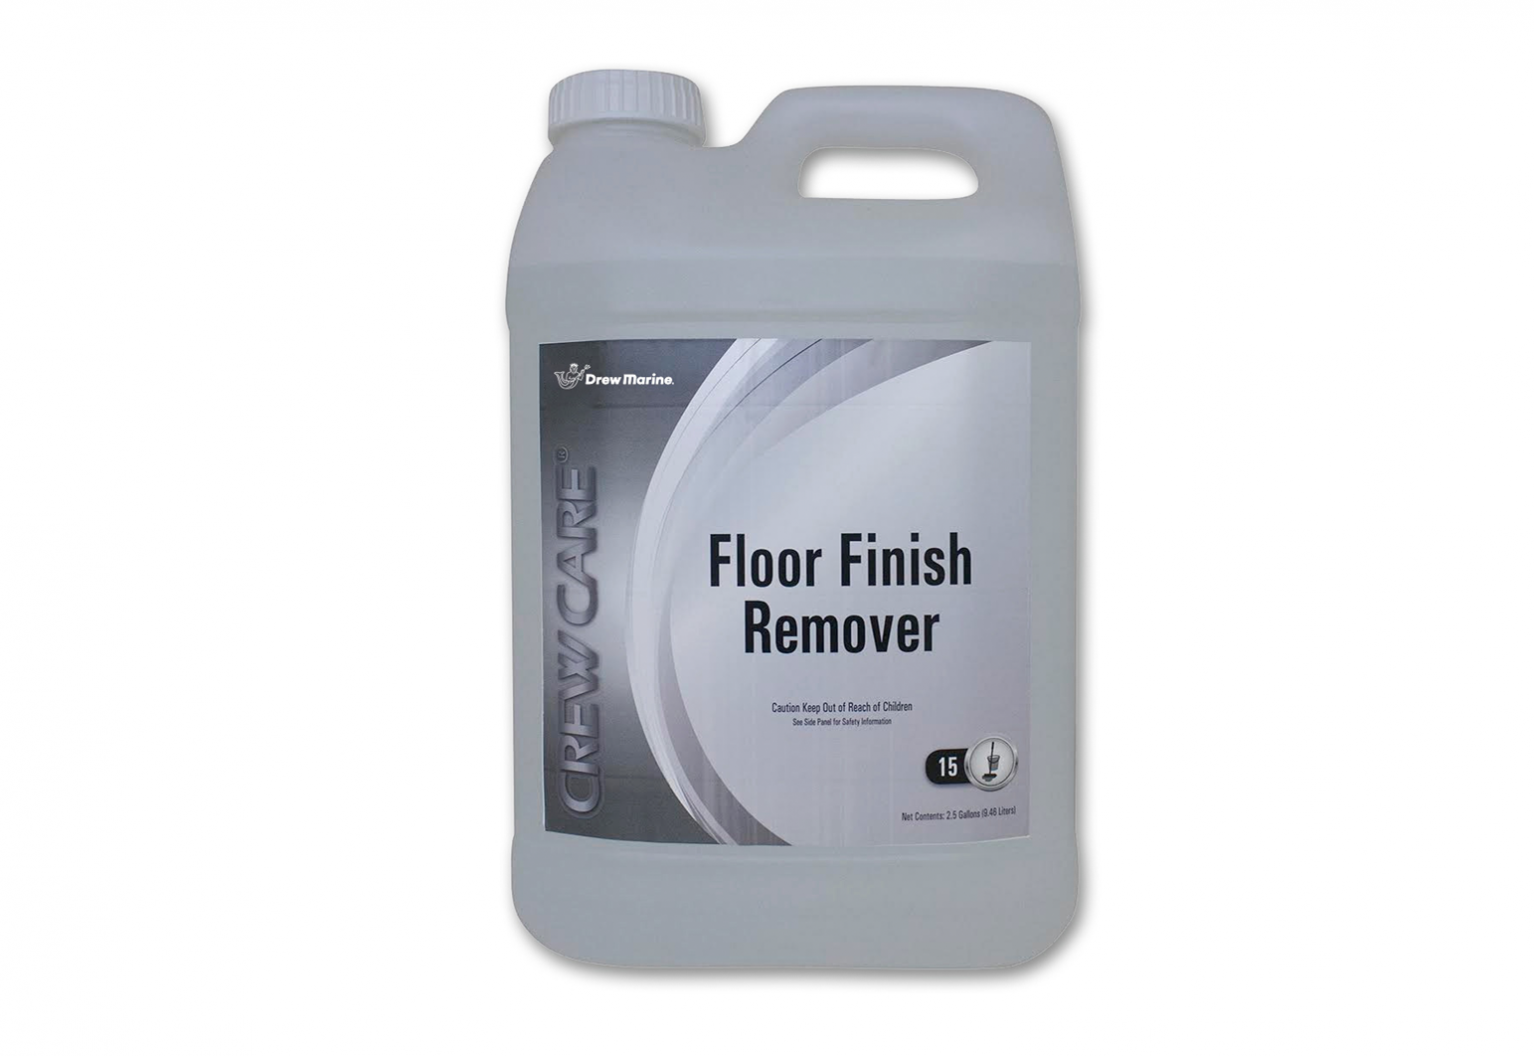 floor_finish_remover_1544x1062.png